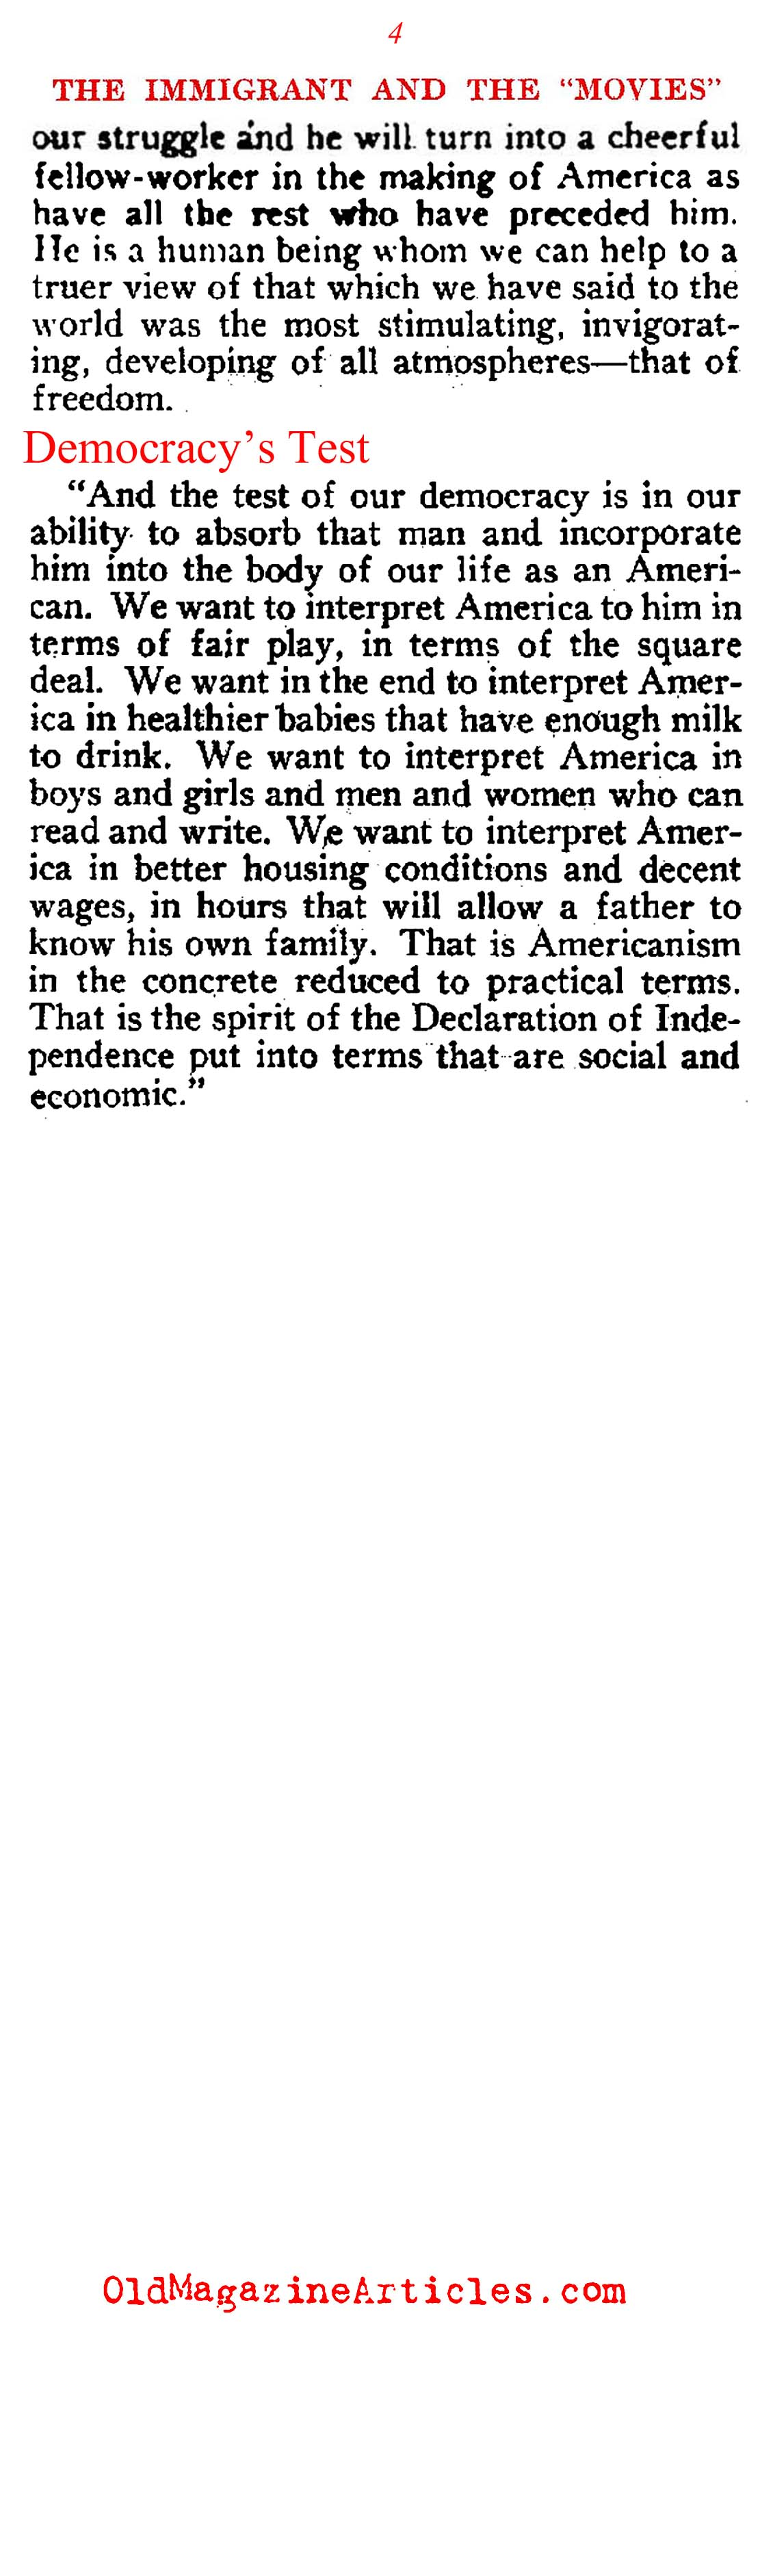 Movies will Promote Americanism (Touchstone Magazine, 1920)